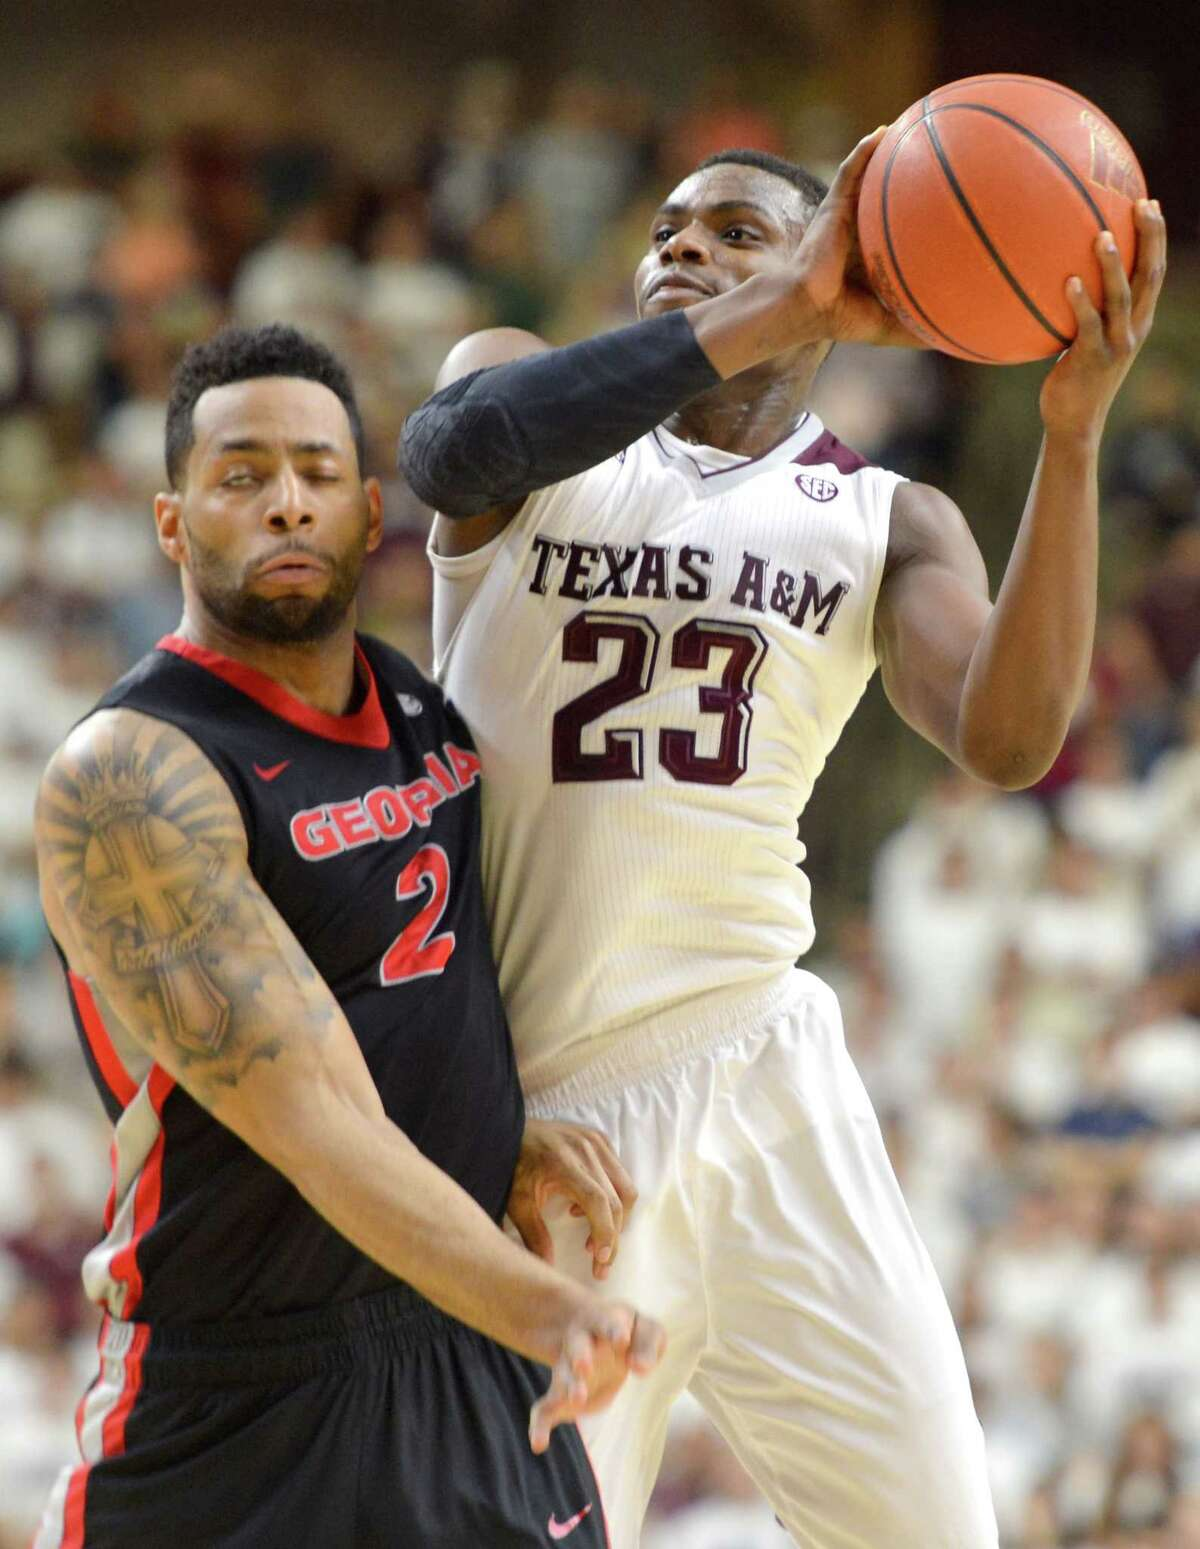 Texas A&M guard Danuel House (23) is fouled by Georgia's Marcus Thornton (2) during the first half of a NCAA college basketball game at Reed Arena in College Station, Texas on Wednesday, Feb. 11, 2015. (AP Photo/College Station Eagle, Sam Craft) MANDATORY CREDIT